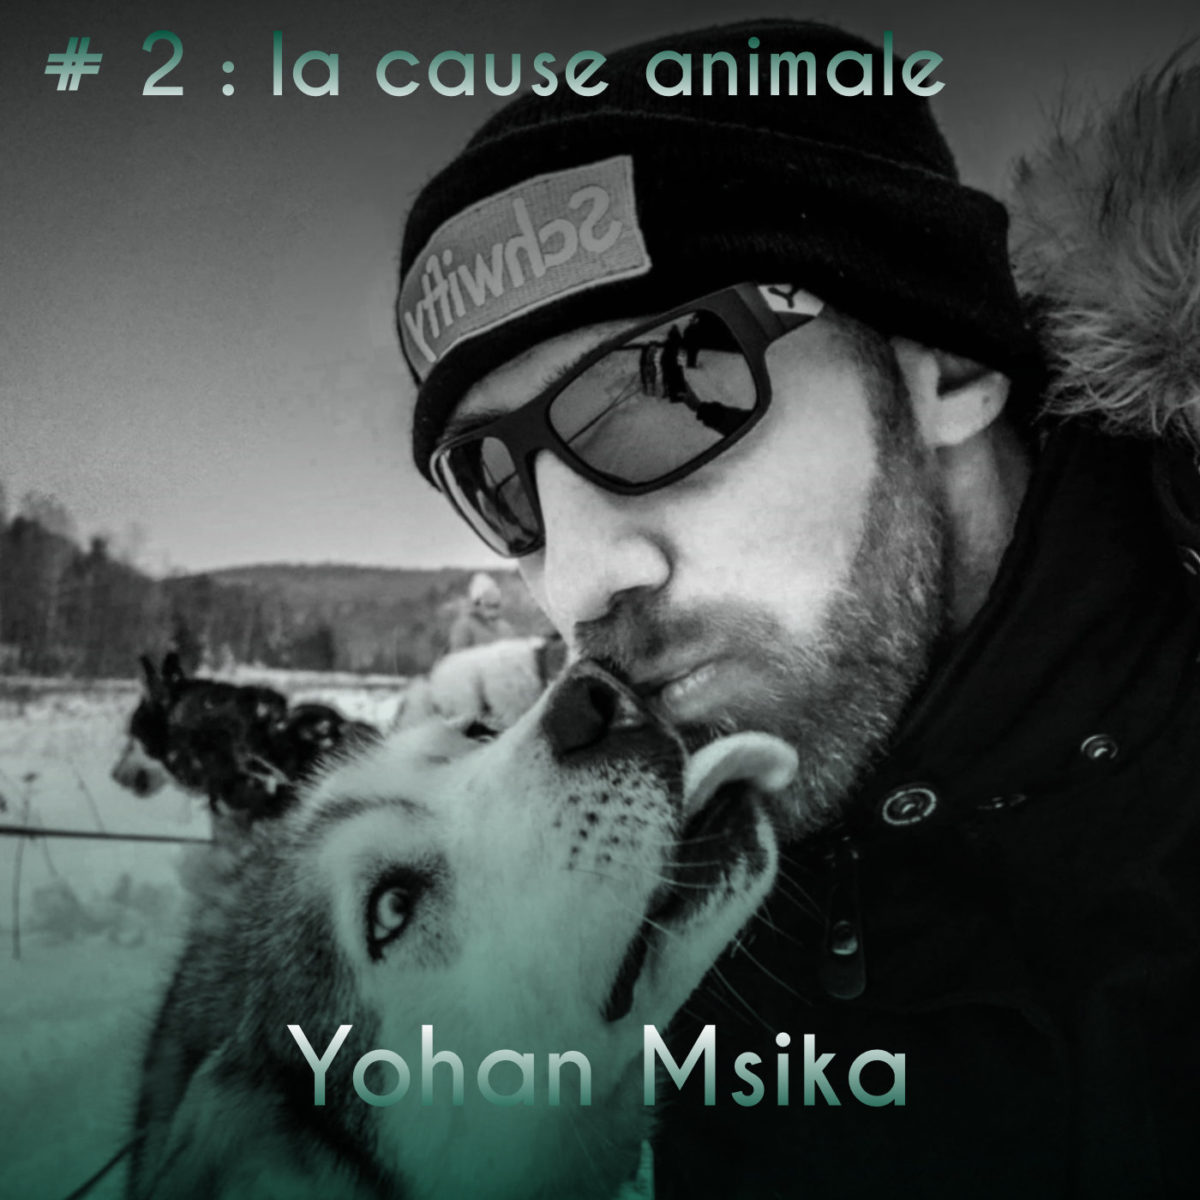 Couverture Podcast #2 Yohan Msika